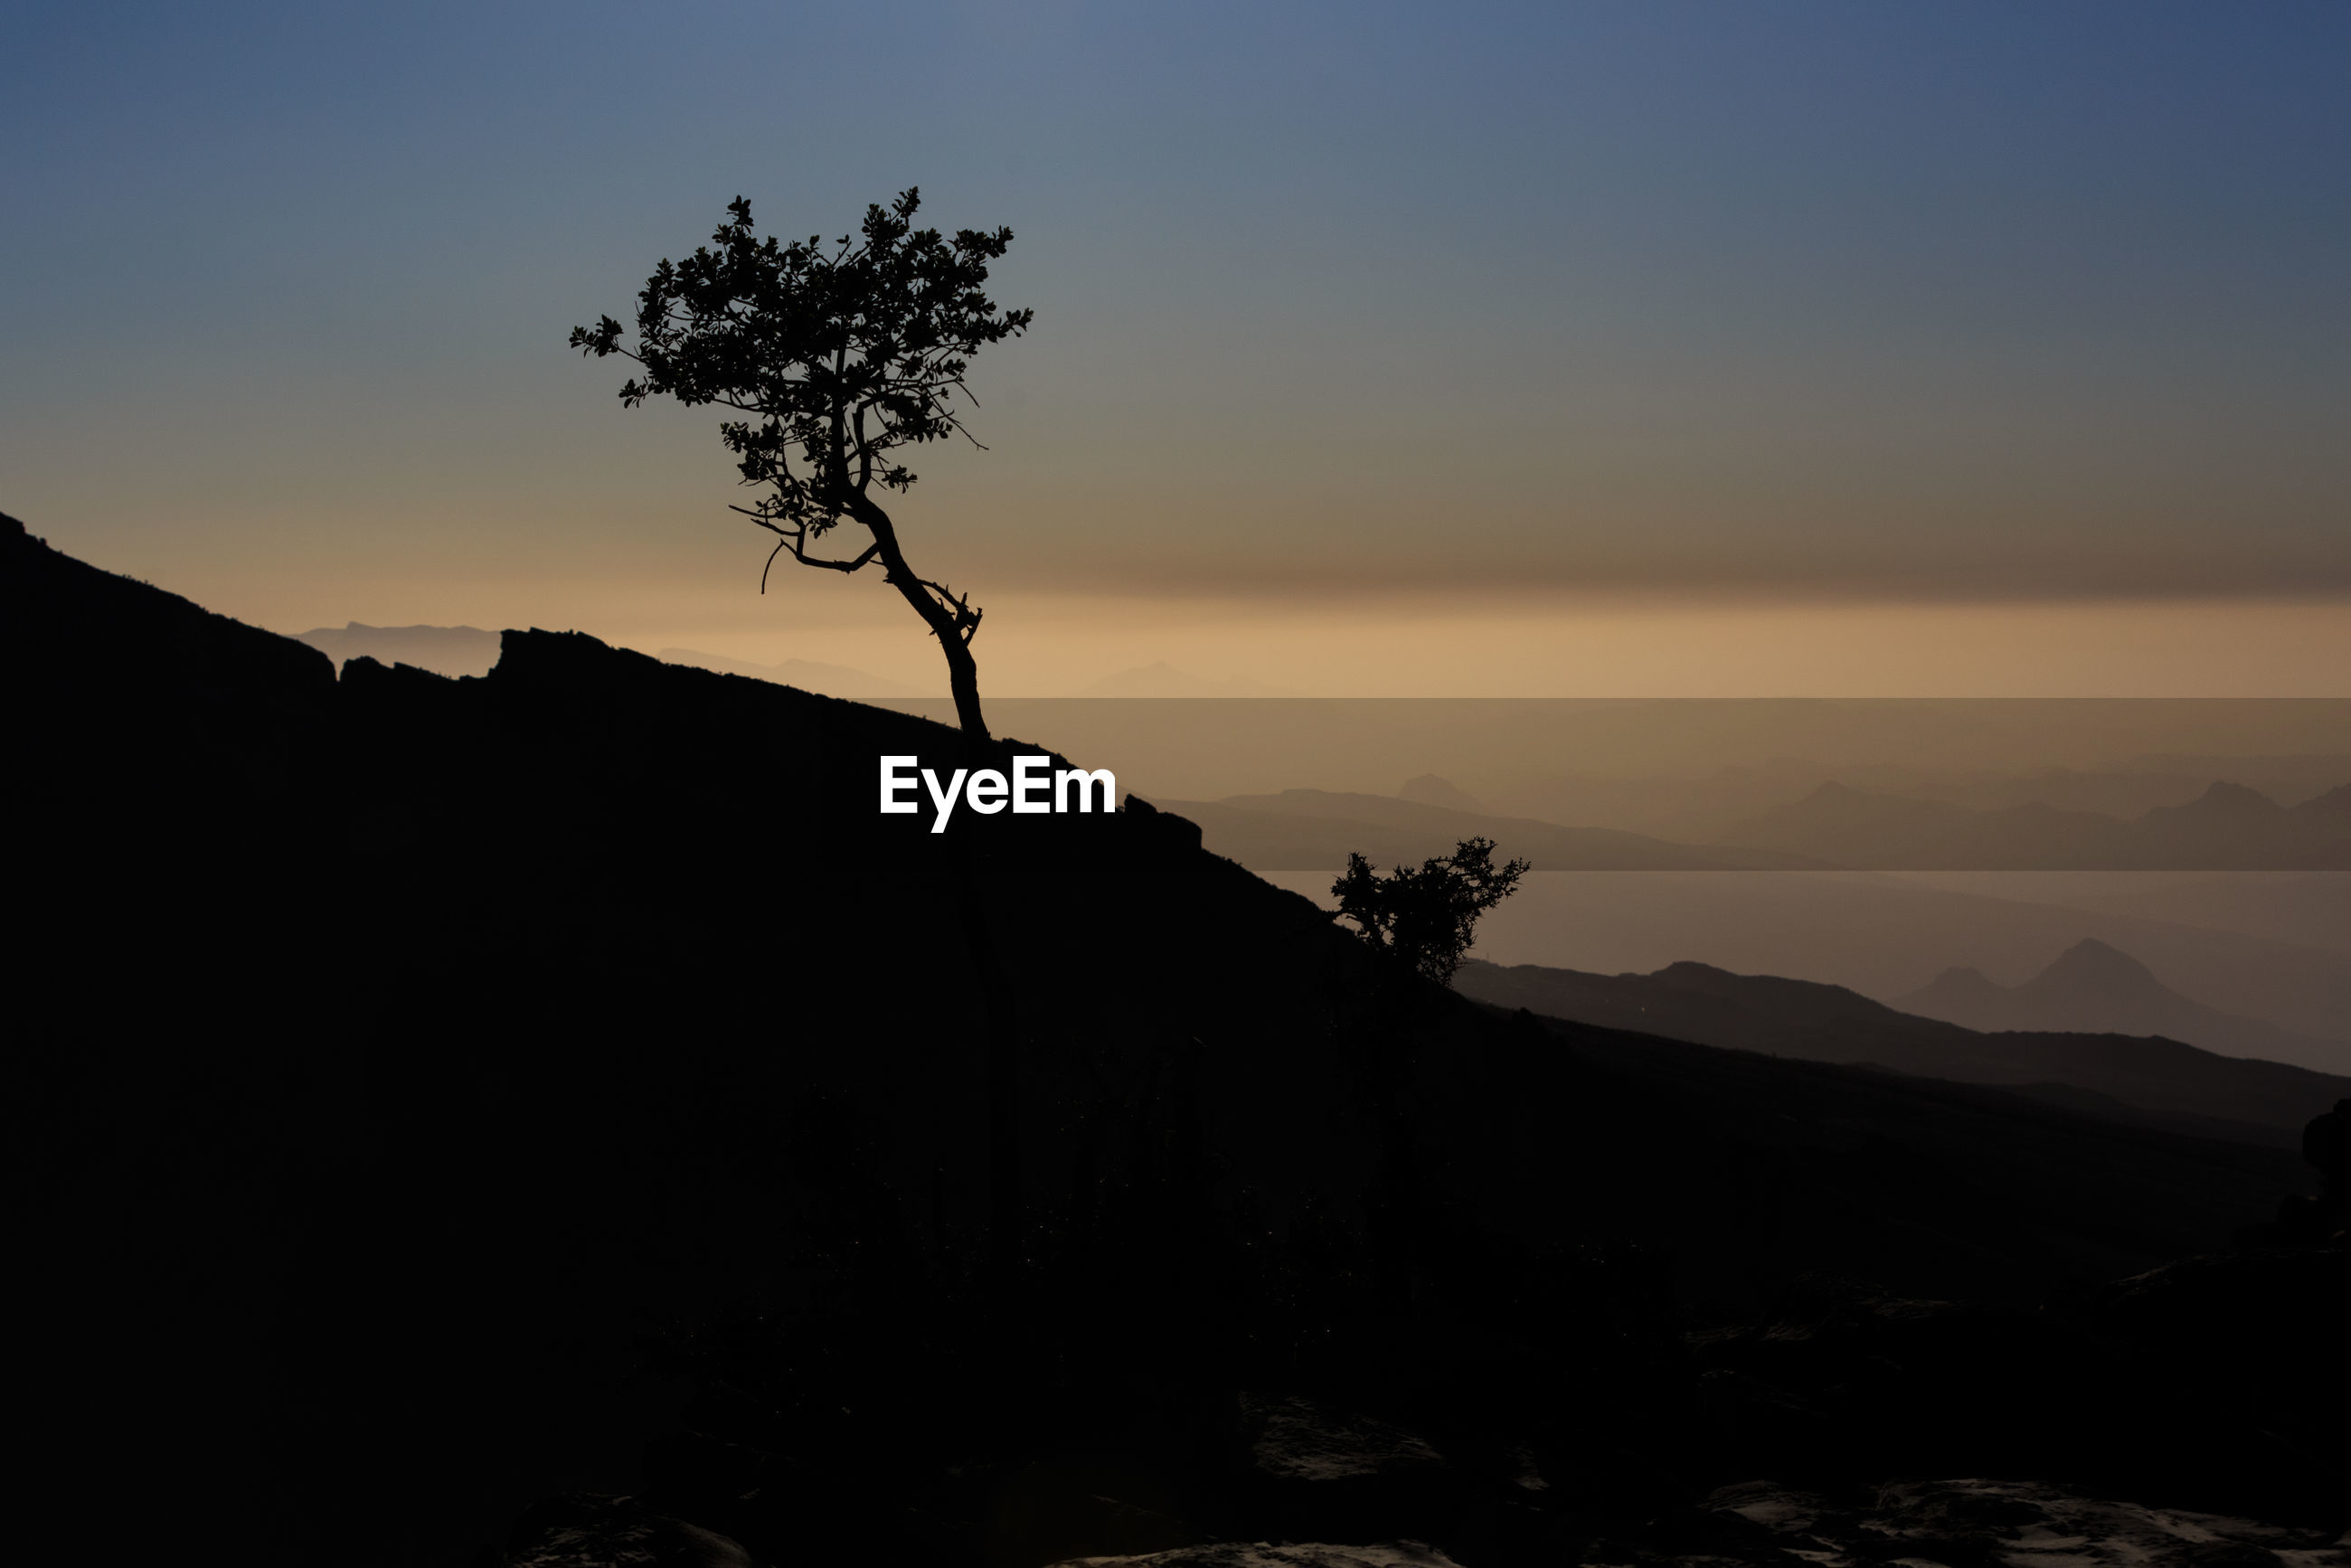 SILHOUETTE TREE ON MOUNTAIN AGAINST SKY